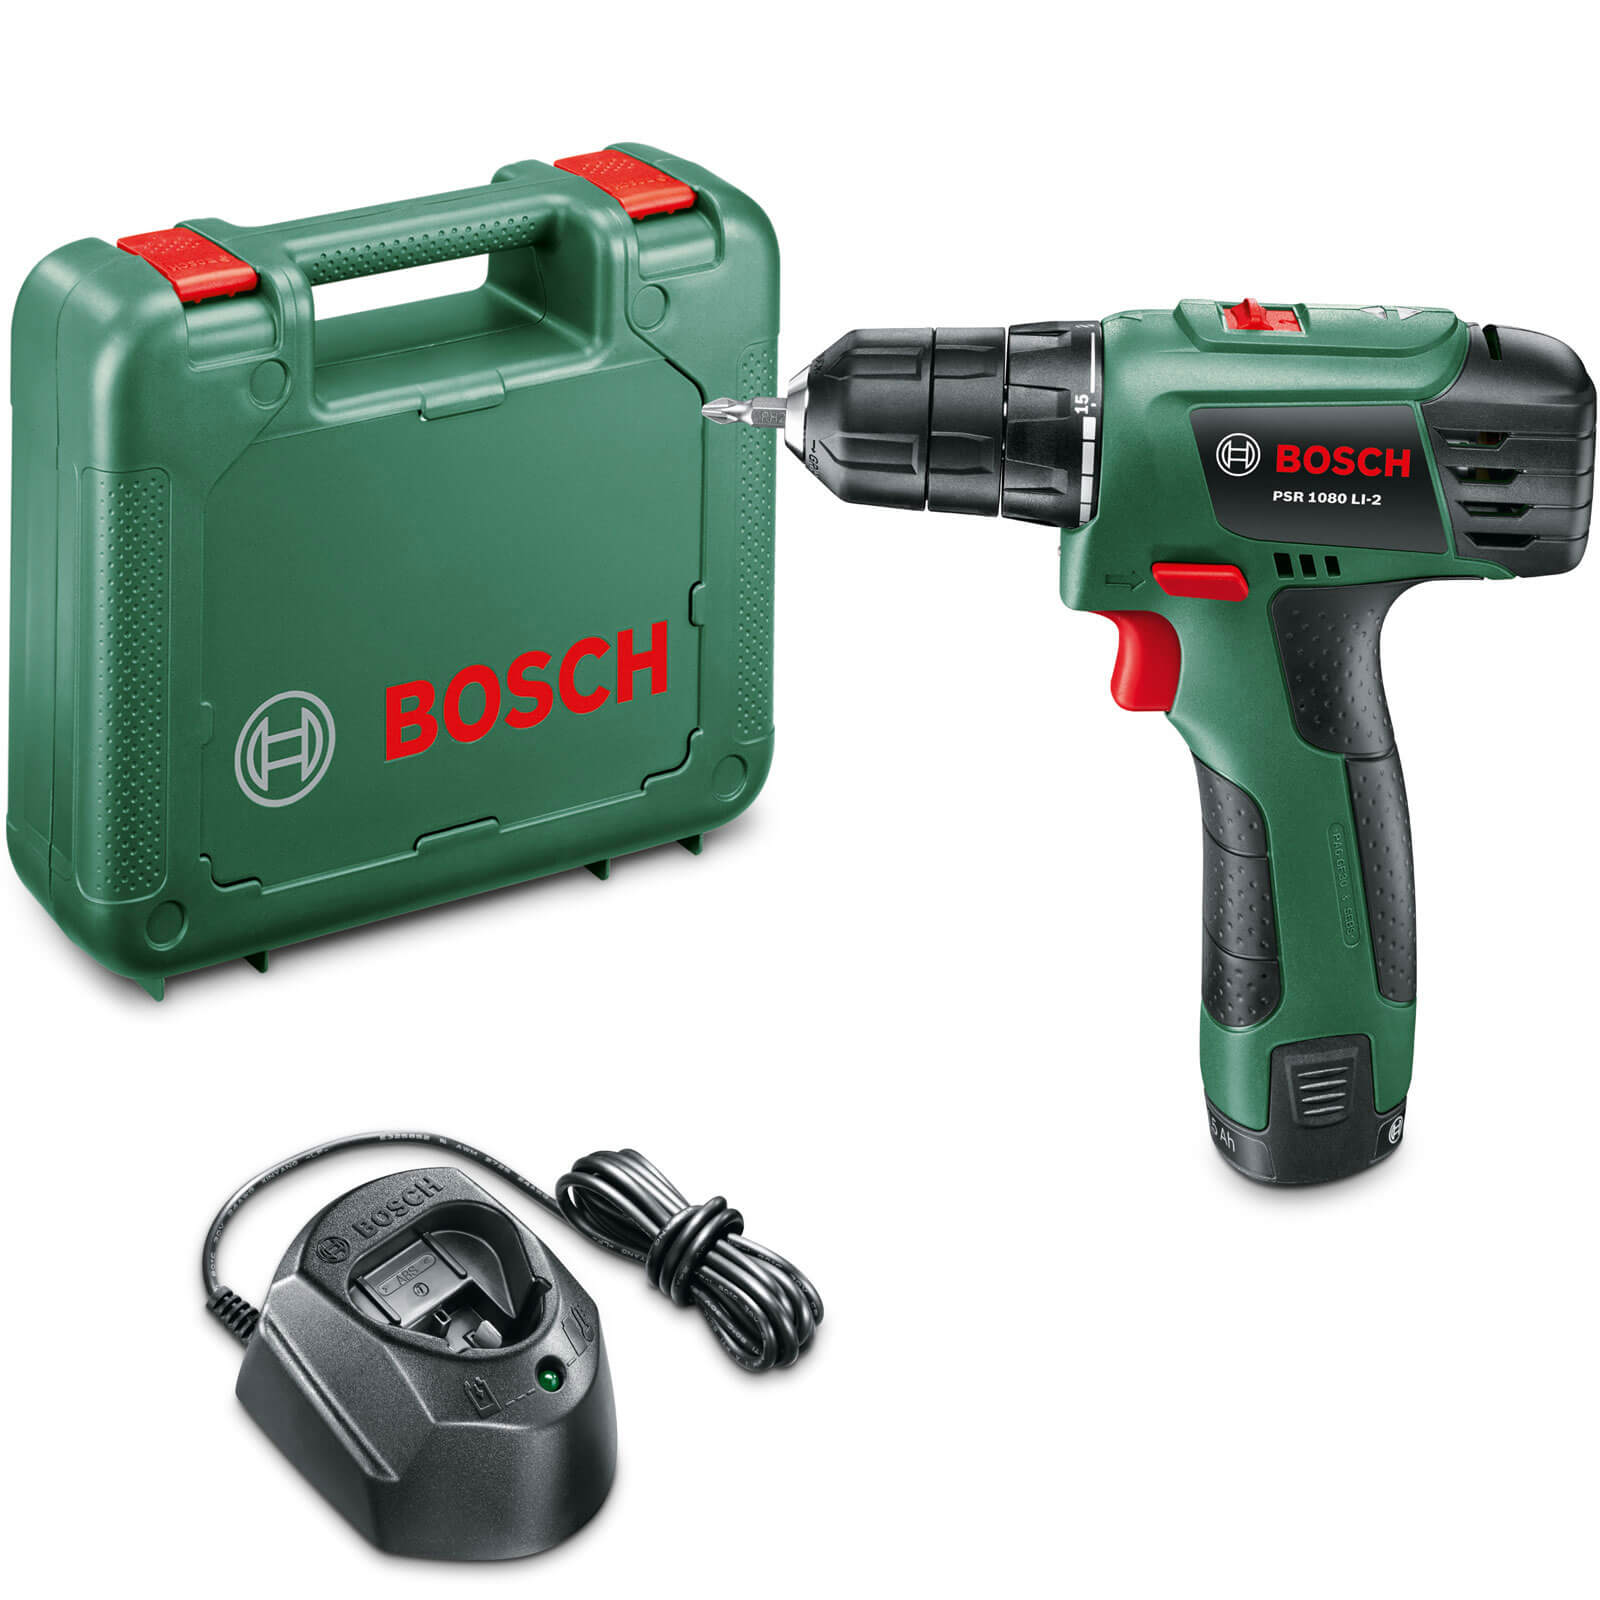 bosch power4all psr 1080 li cordless drill driver with 1 li ion battery tooled. Black Bedroom Furniture Sets. Home Design Ideas